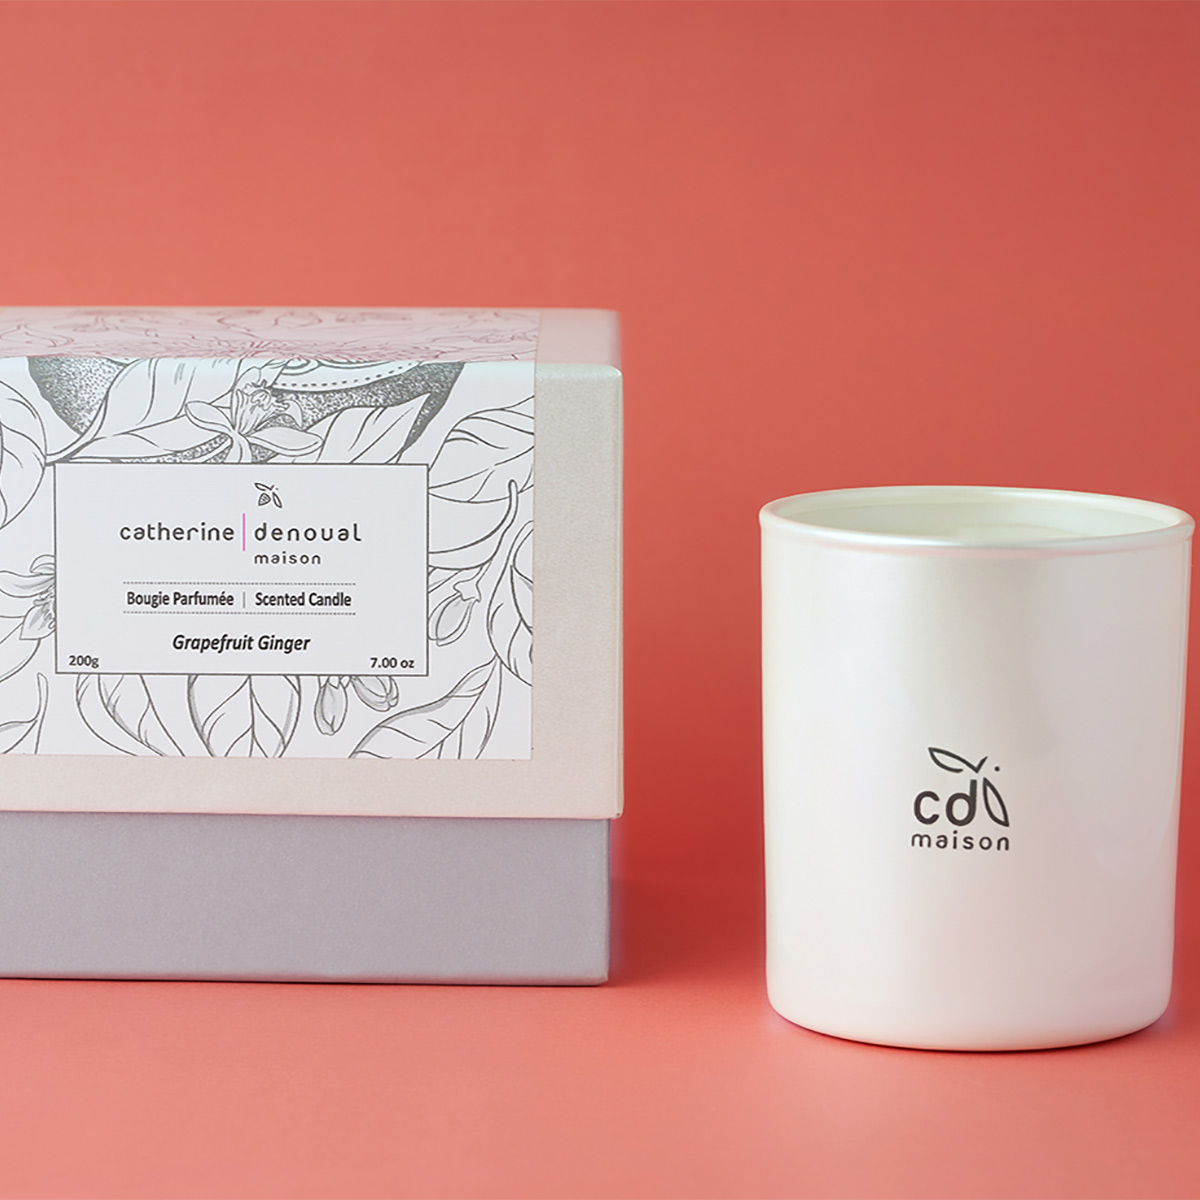 grapefruit ginger scented candle